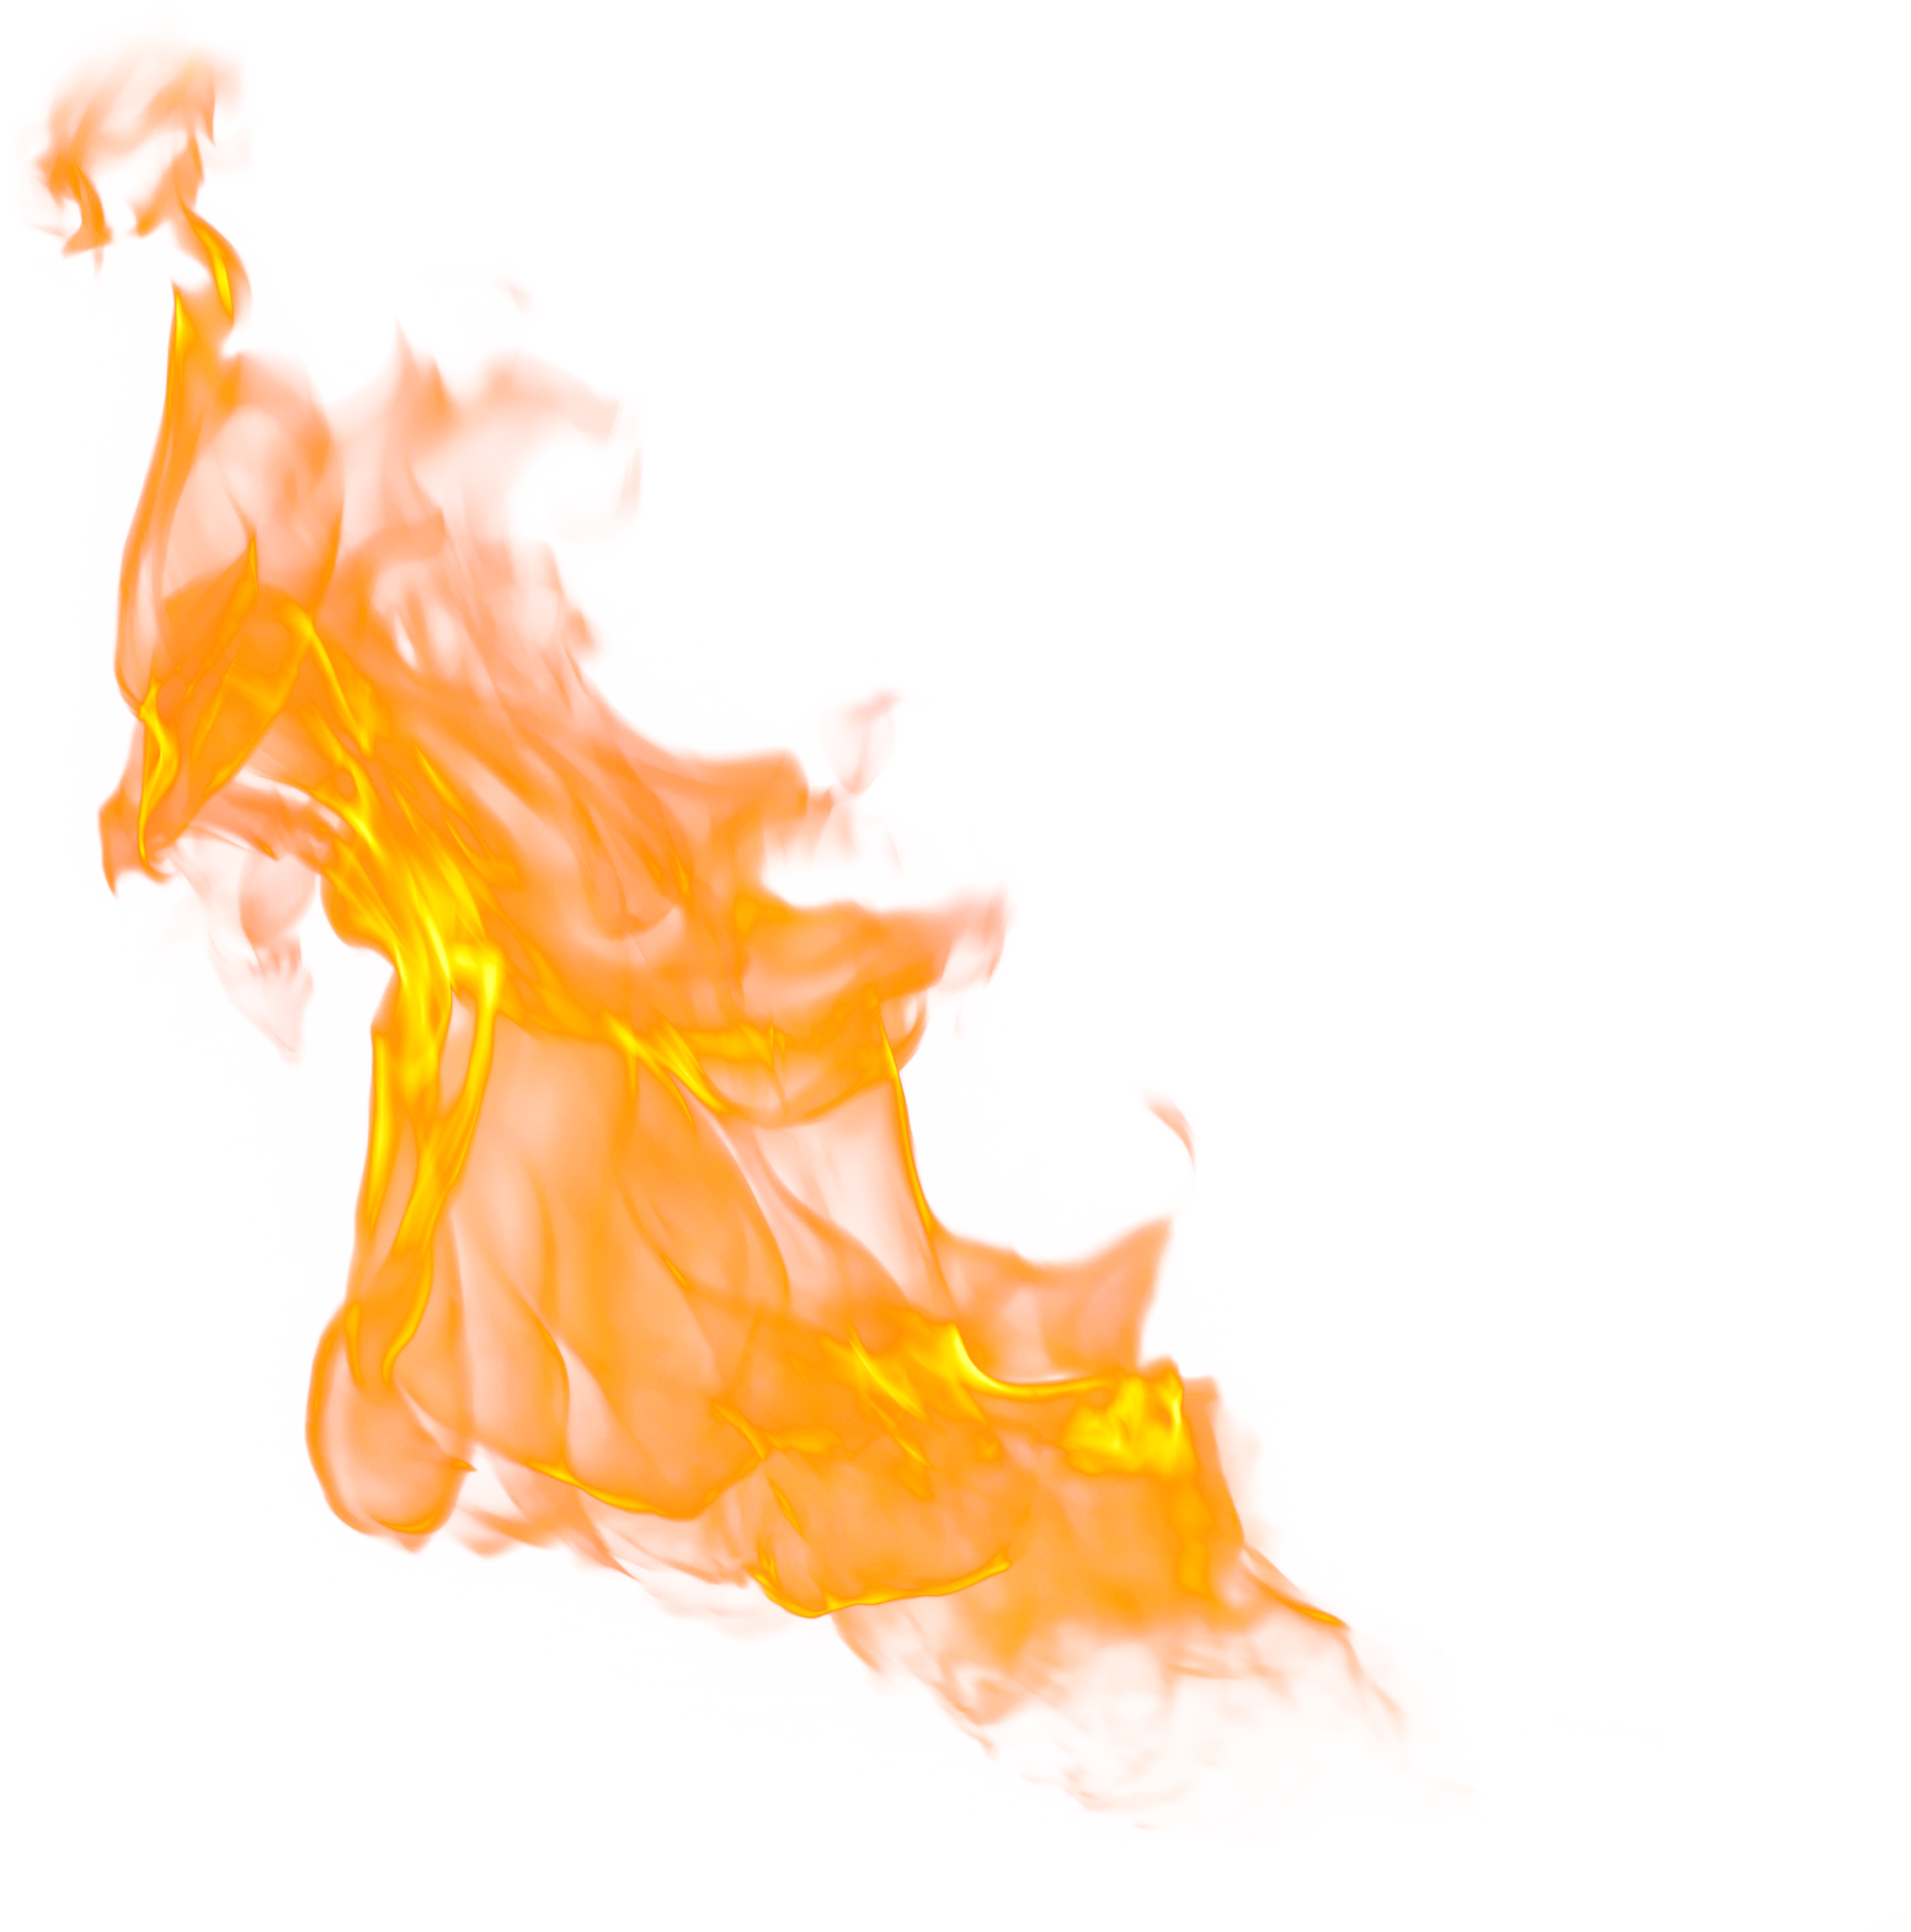 Fire Flame PNG Image - PurePNG   Free transparent CC0 PNG ...